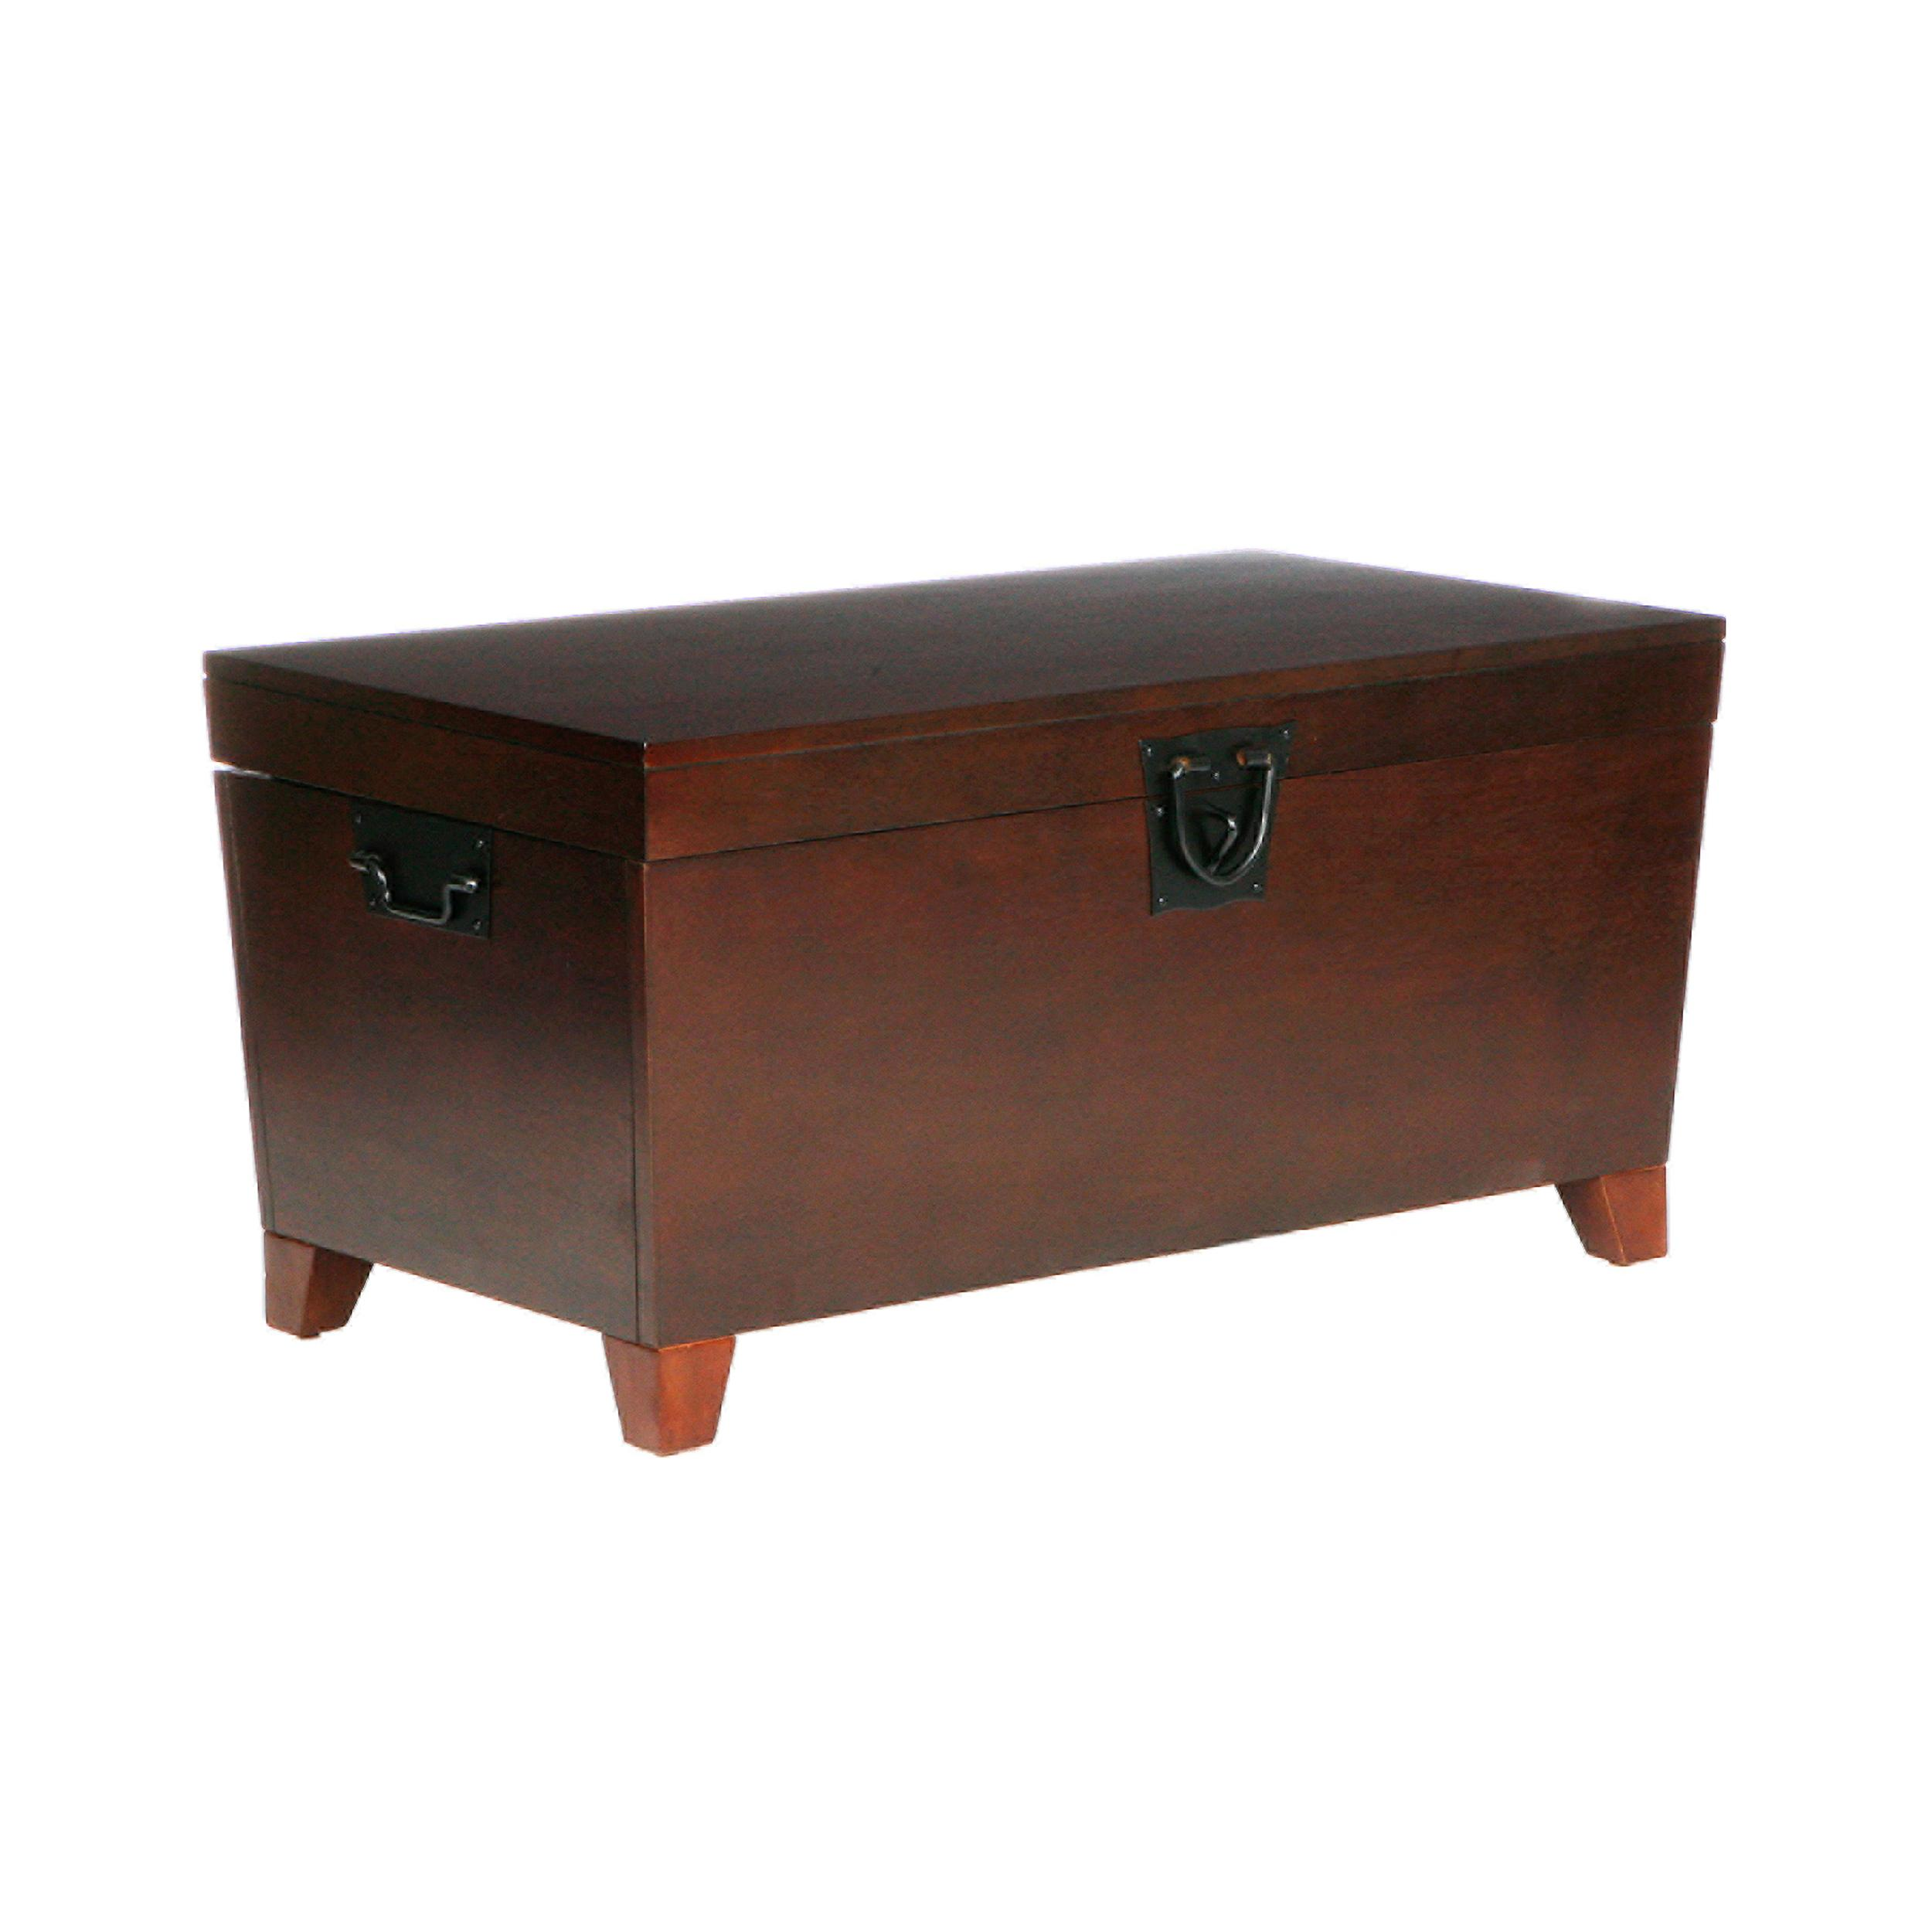 Southern Enterprises Pyramid Storage Trunk Cocktail Table Espresso Finish Kitchen